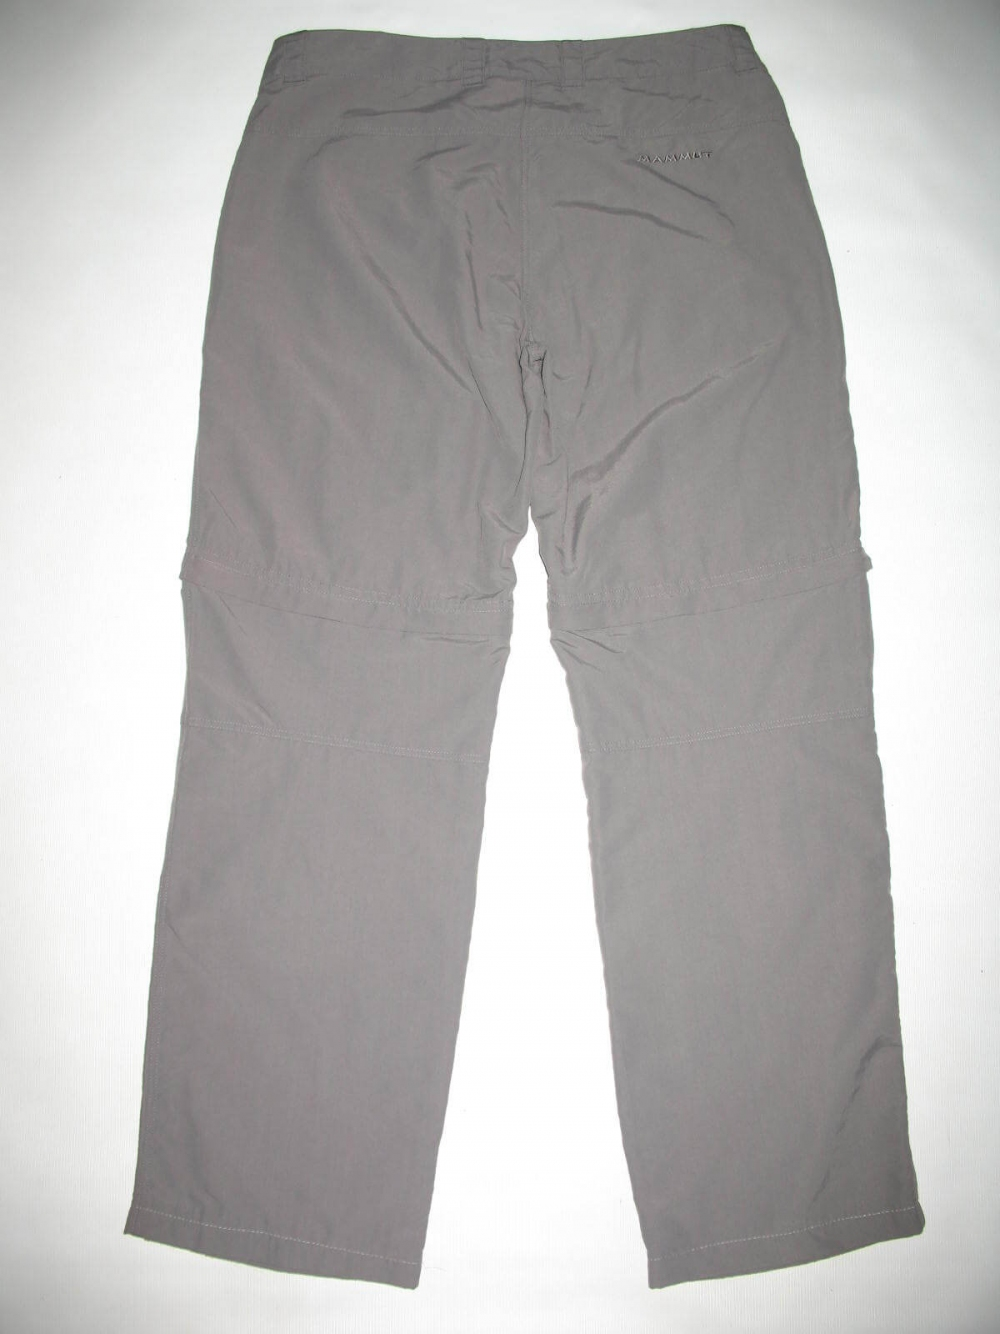 Штаны MAMMUT Zip Off pants lady (размер 40-L/M) - 1